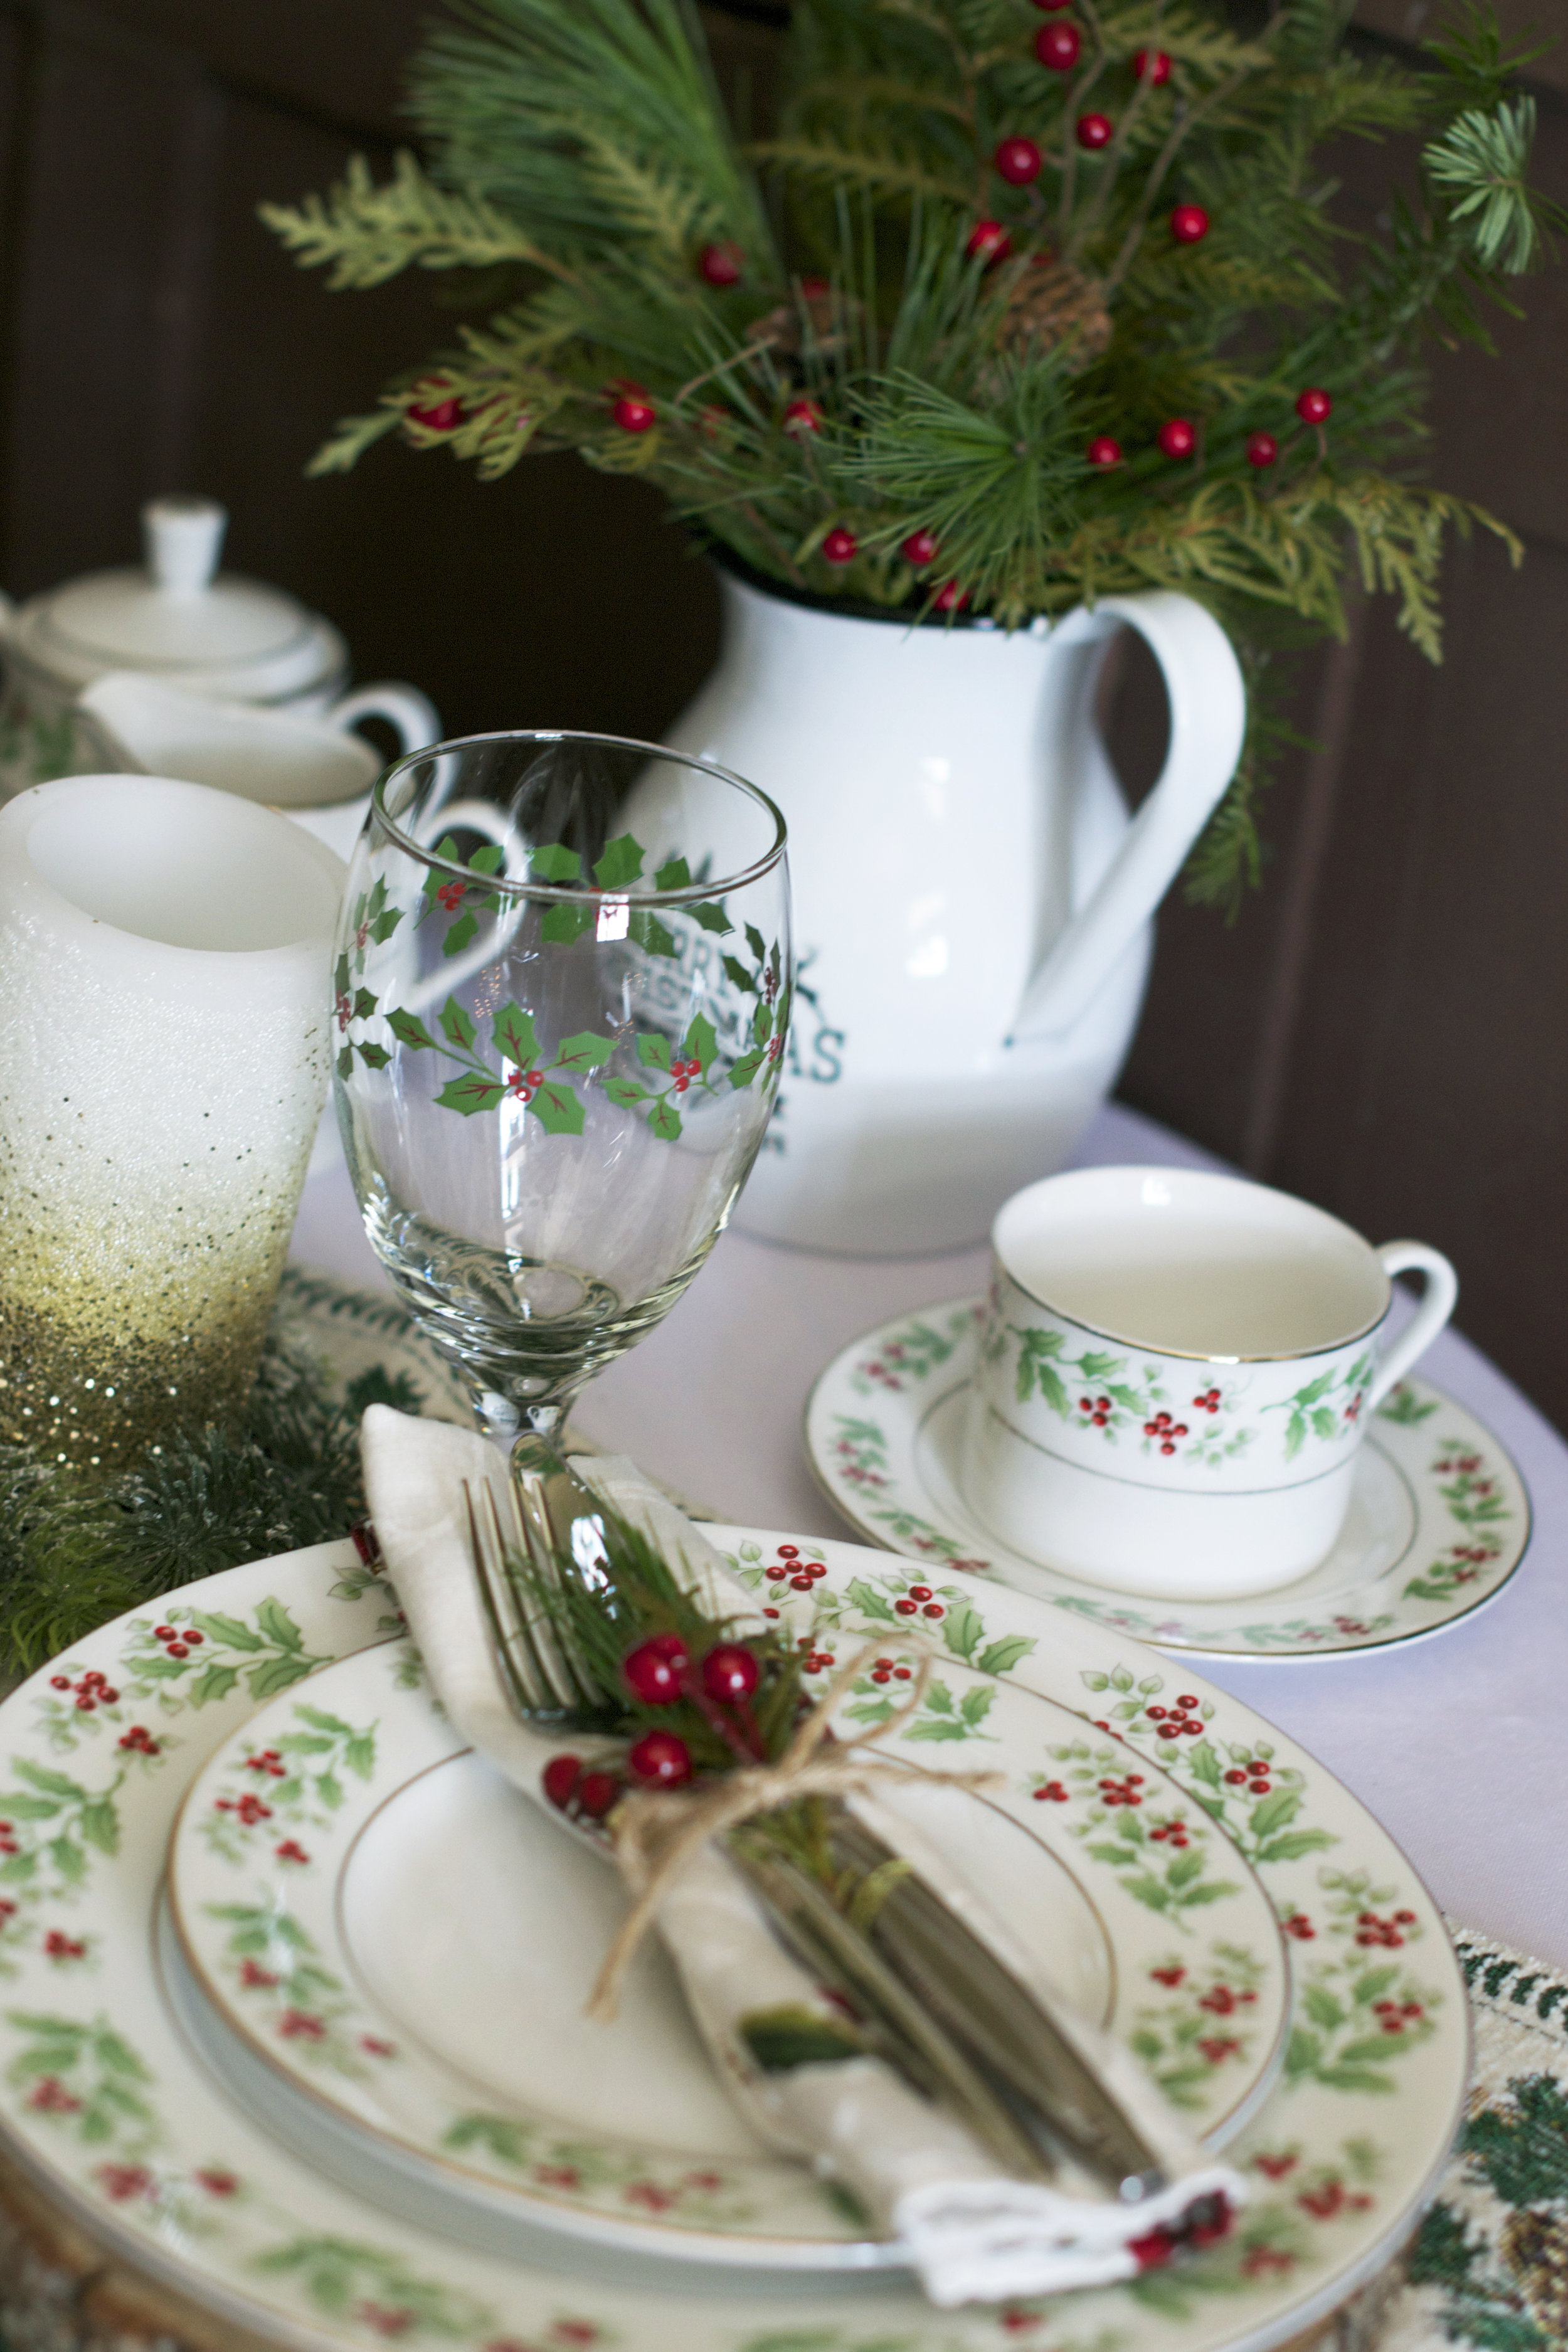 holly-place-setting.jpg